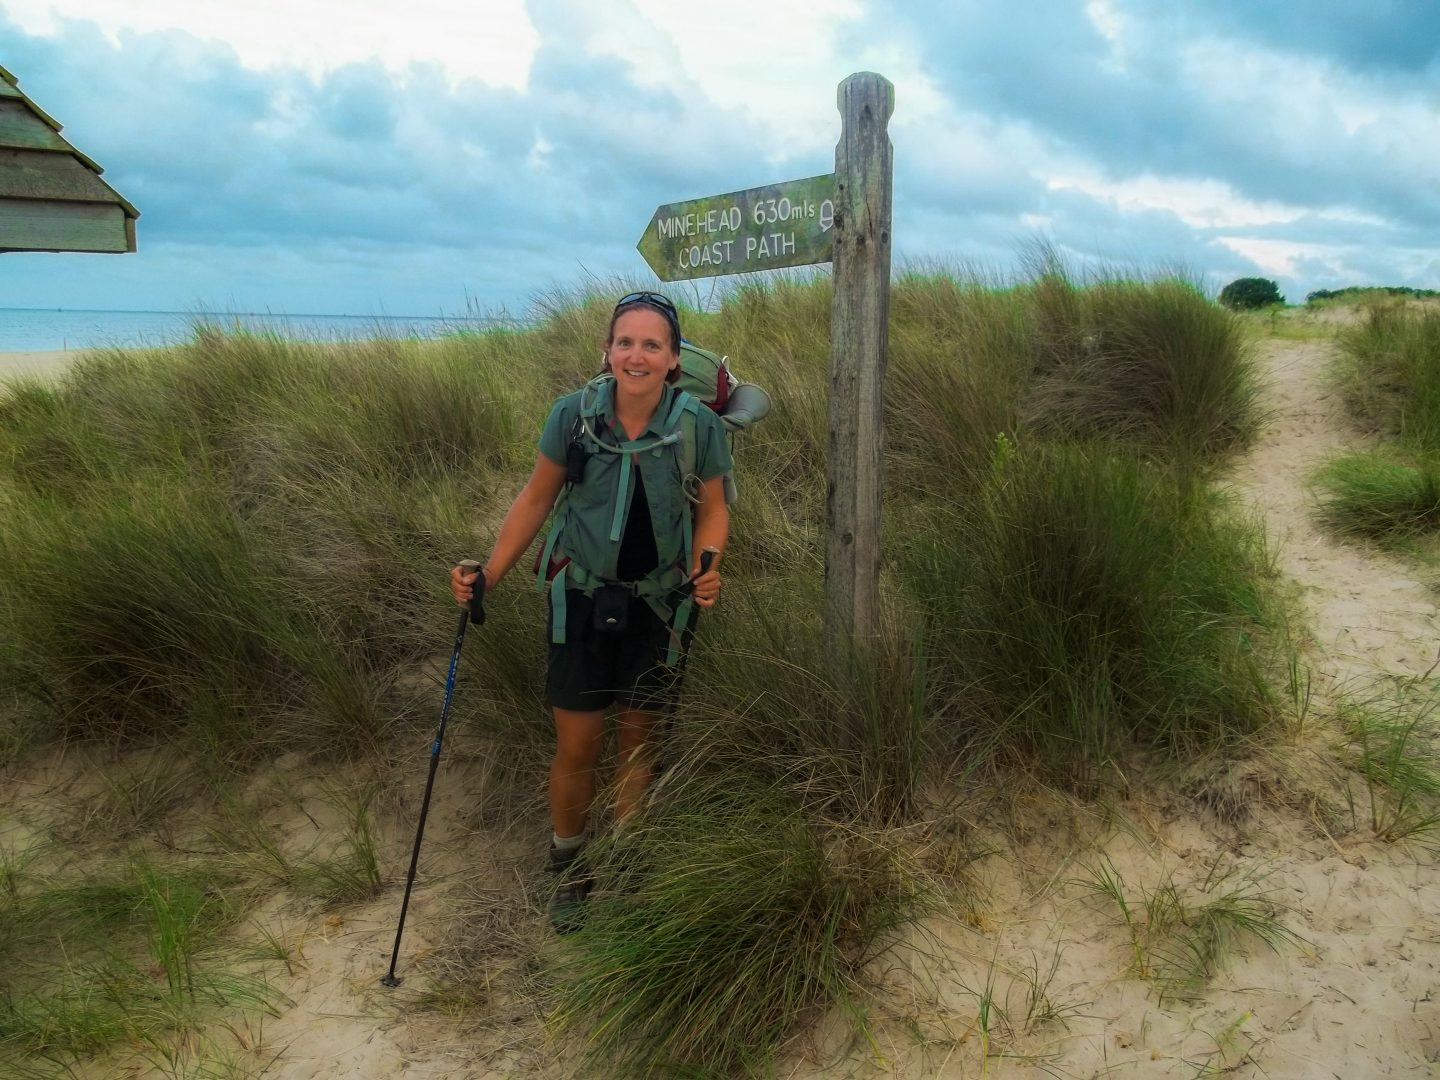 Female backpacker stands in front of a finger post smiling, having just completed a long-distance trail of 630 miles.